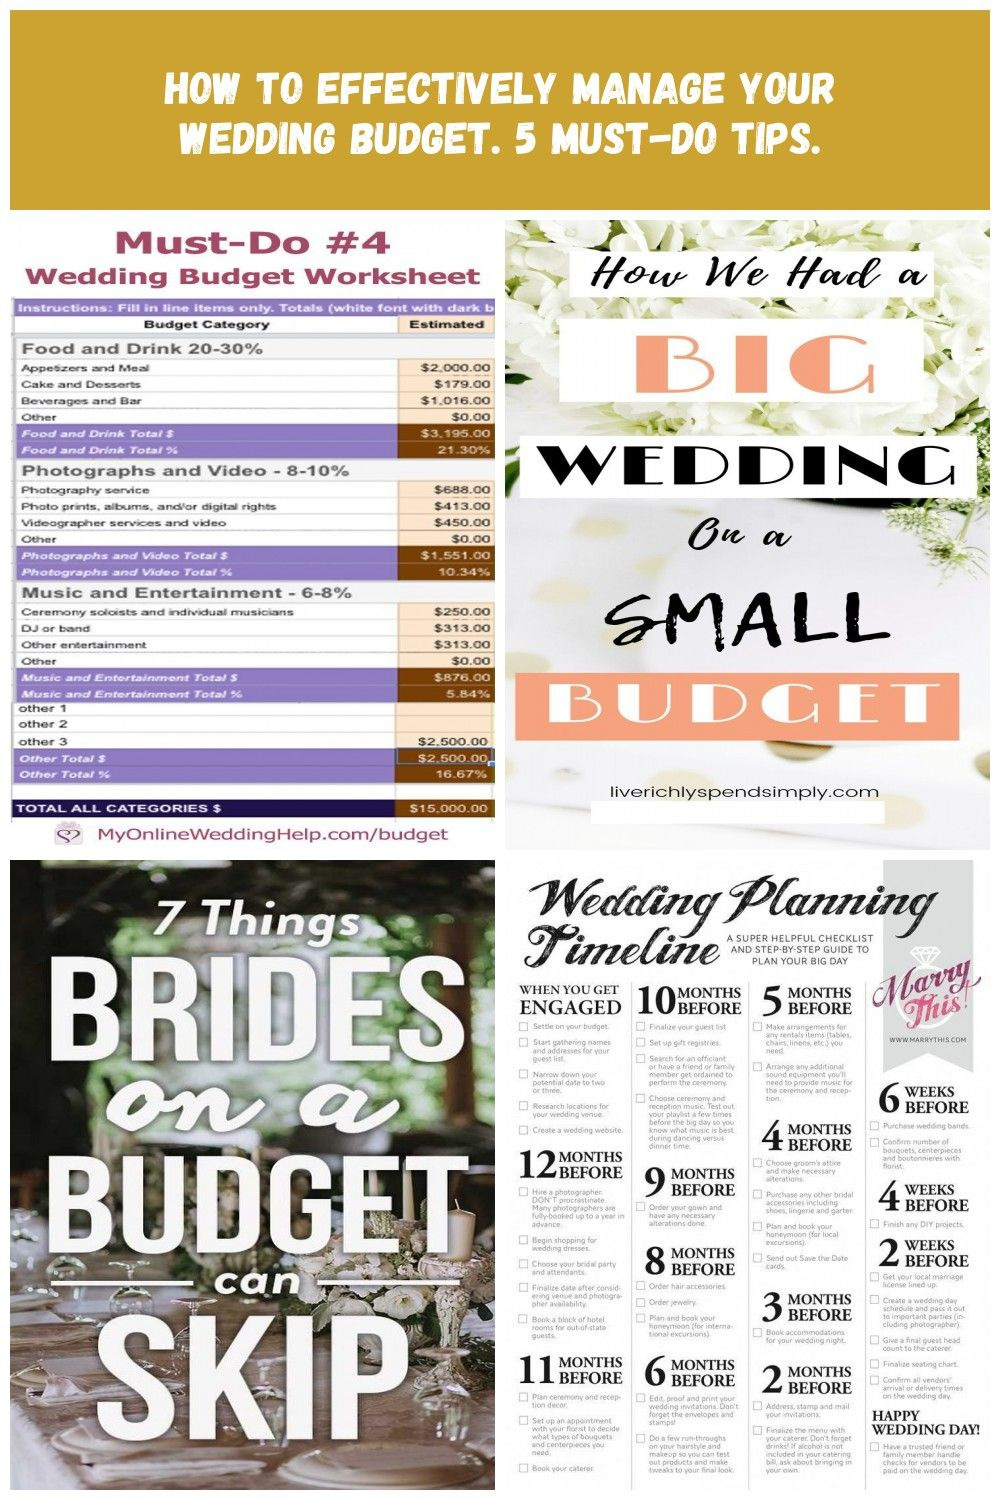 Making A Budget Spreadsheet For Your Wedding Spending Is Must Do Tip Number 4 For How To Manage Your Weddin Budget Spreadsheet Making A Budget Wedding Spending